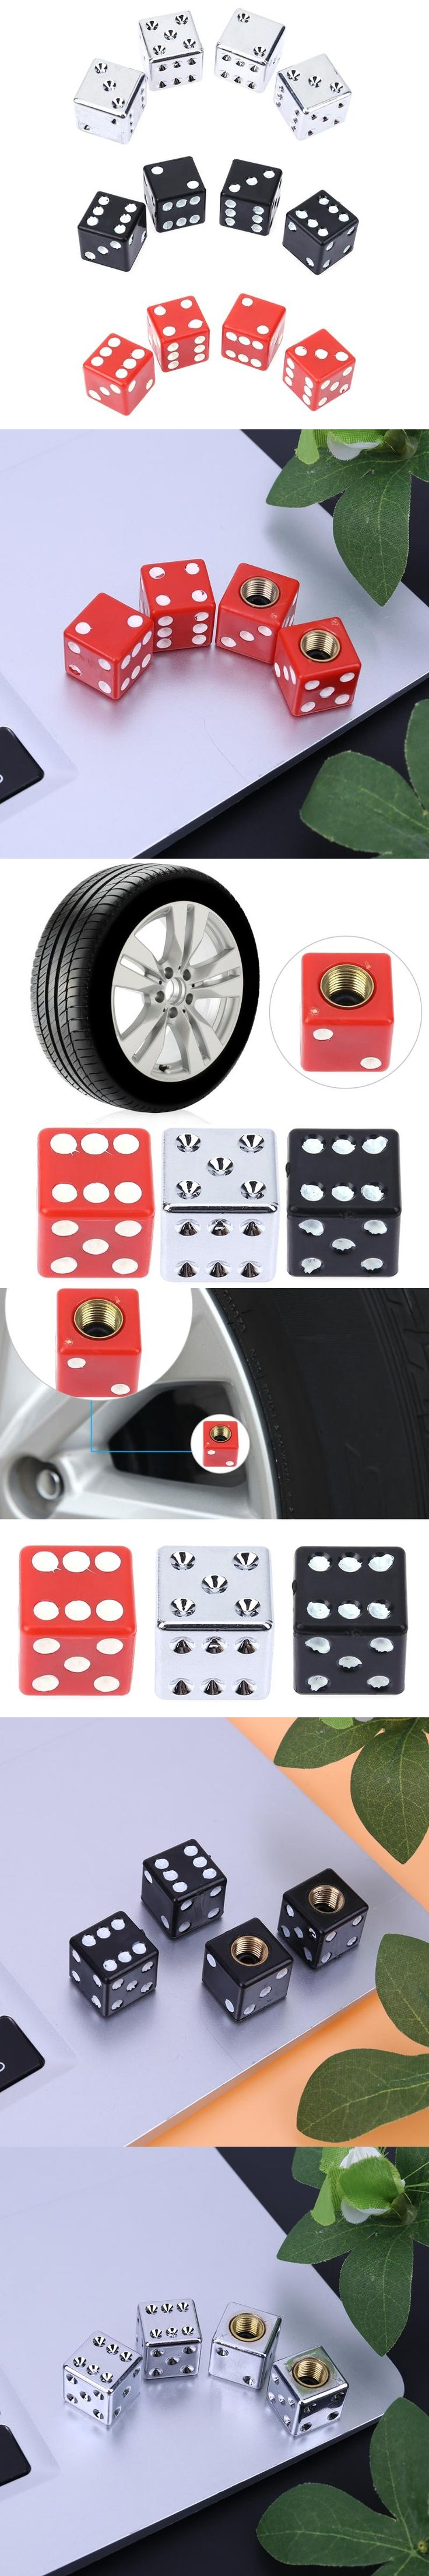 4Pcs Dice Shape Car Truck Bike Tire Air Valve Stem Cap Covers Universal Automobiles Wheel Tyre Rims for Bicycle Motorcycle ATV